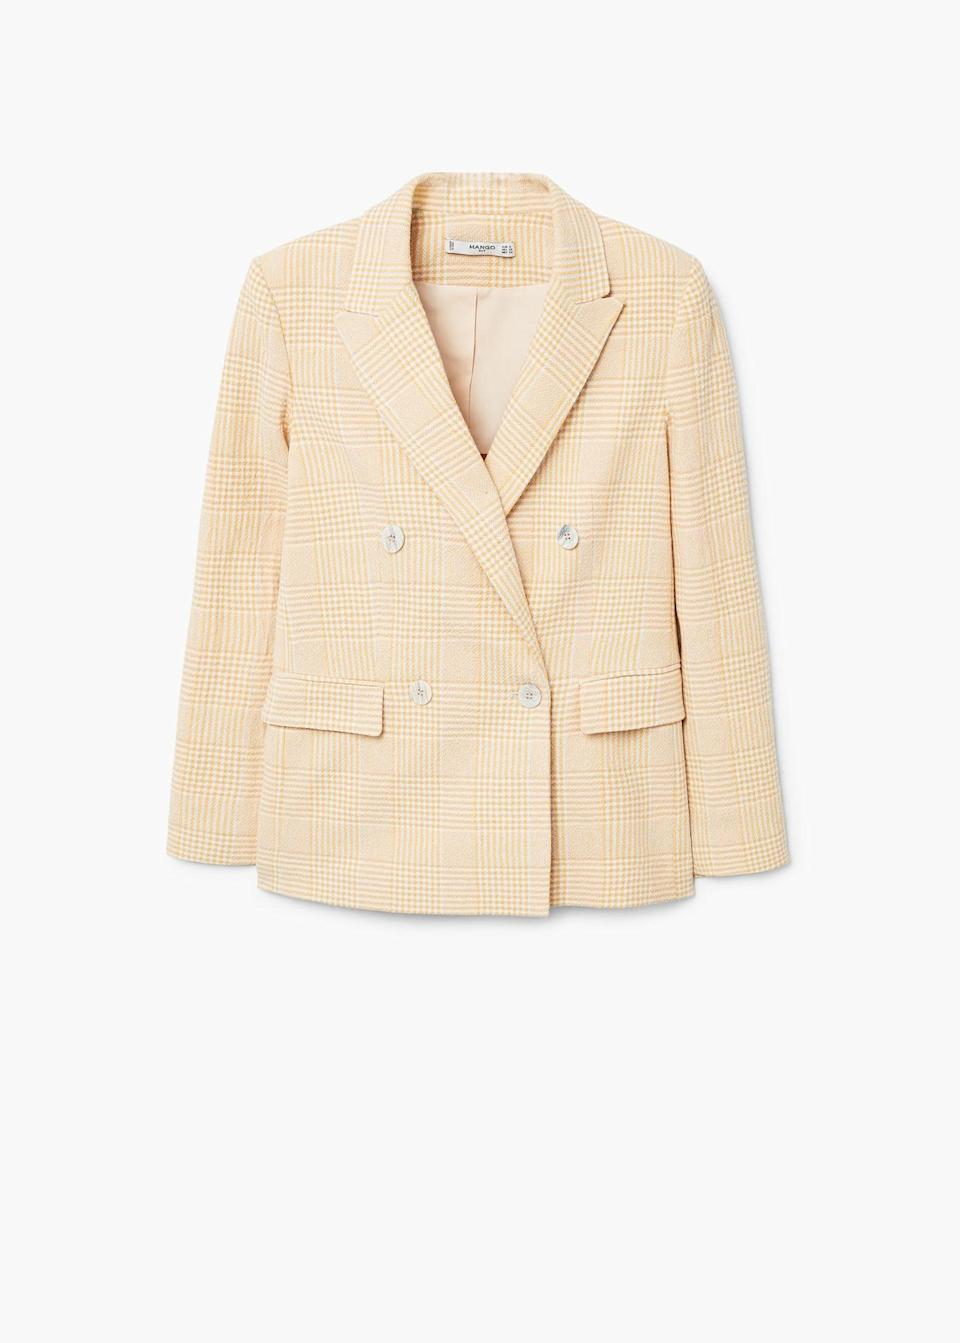 "<p><span>We can't get enough of the blazers over at Mango, and this peach-hued version is the perfect colour for the warmer months. </span><br><em><a href=""https://shop.mango.com/gb/women/jackets-blazers/check-structured-blazer_31010899.html?c=12&n=1&s=nuevo"" rel=""nofollow noopener"" target=""_blank"" data-ylk=""slk:Buy here."" class=""link rapid-noclick-resp""><span>Buy here.</span></a></em> </p>"